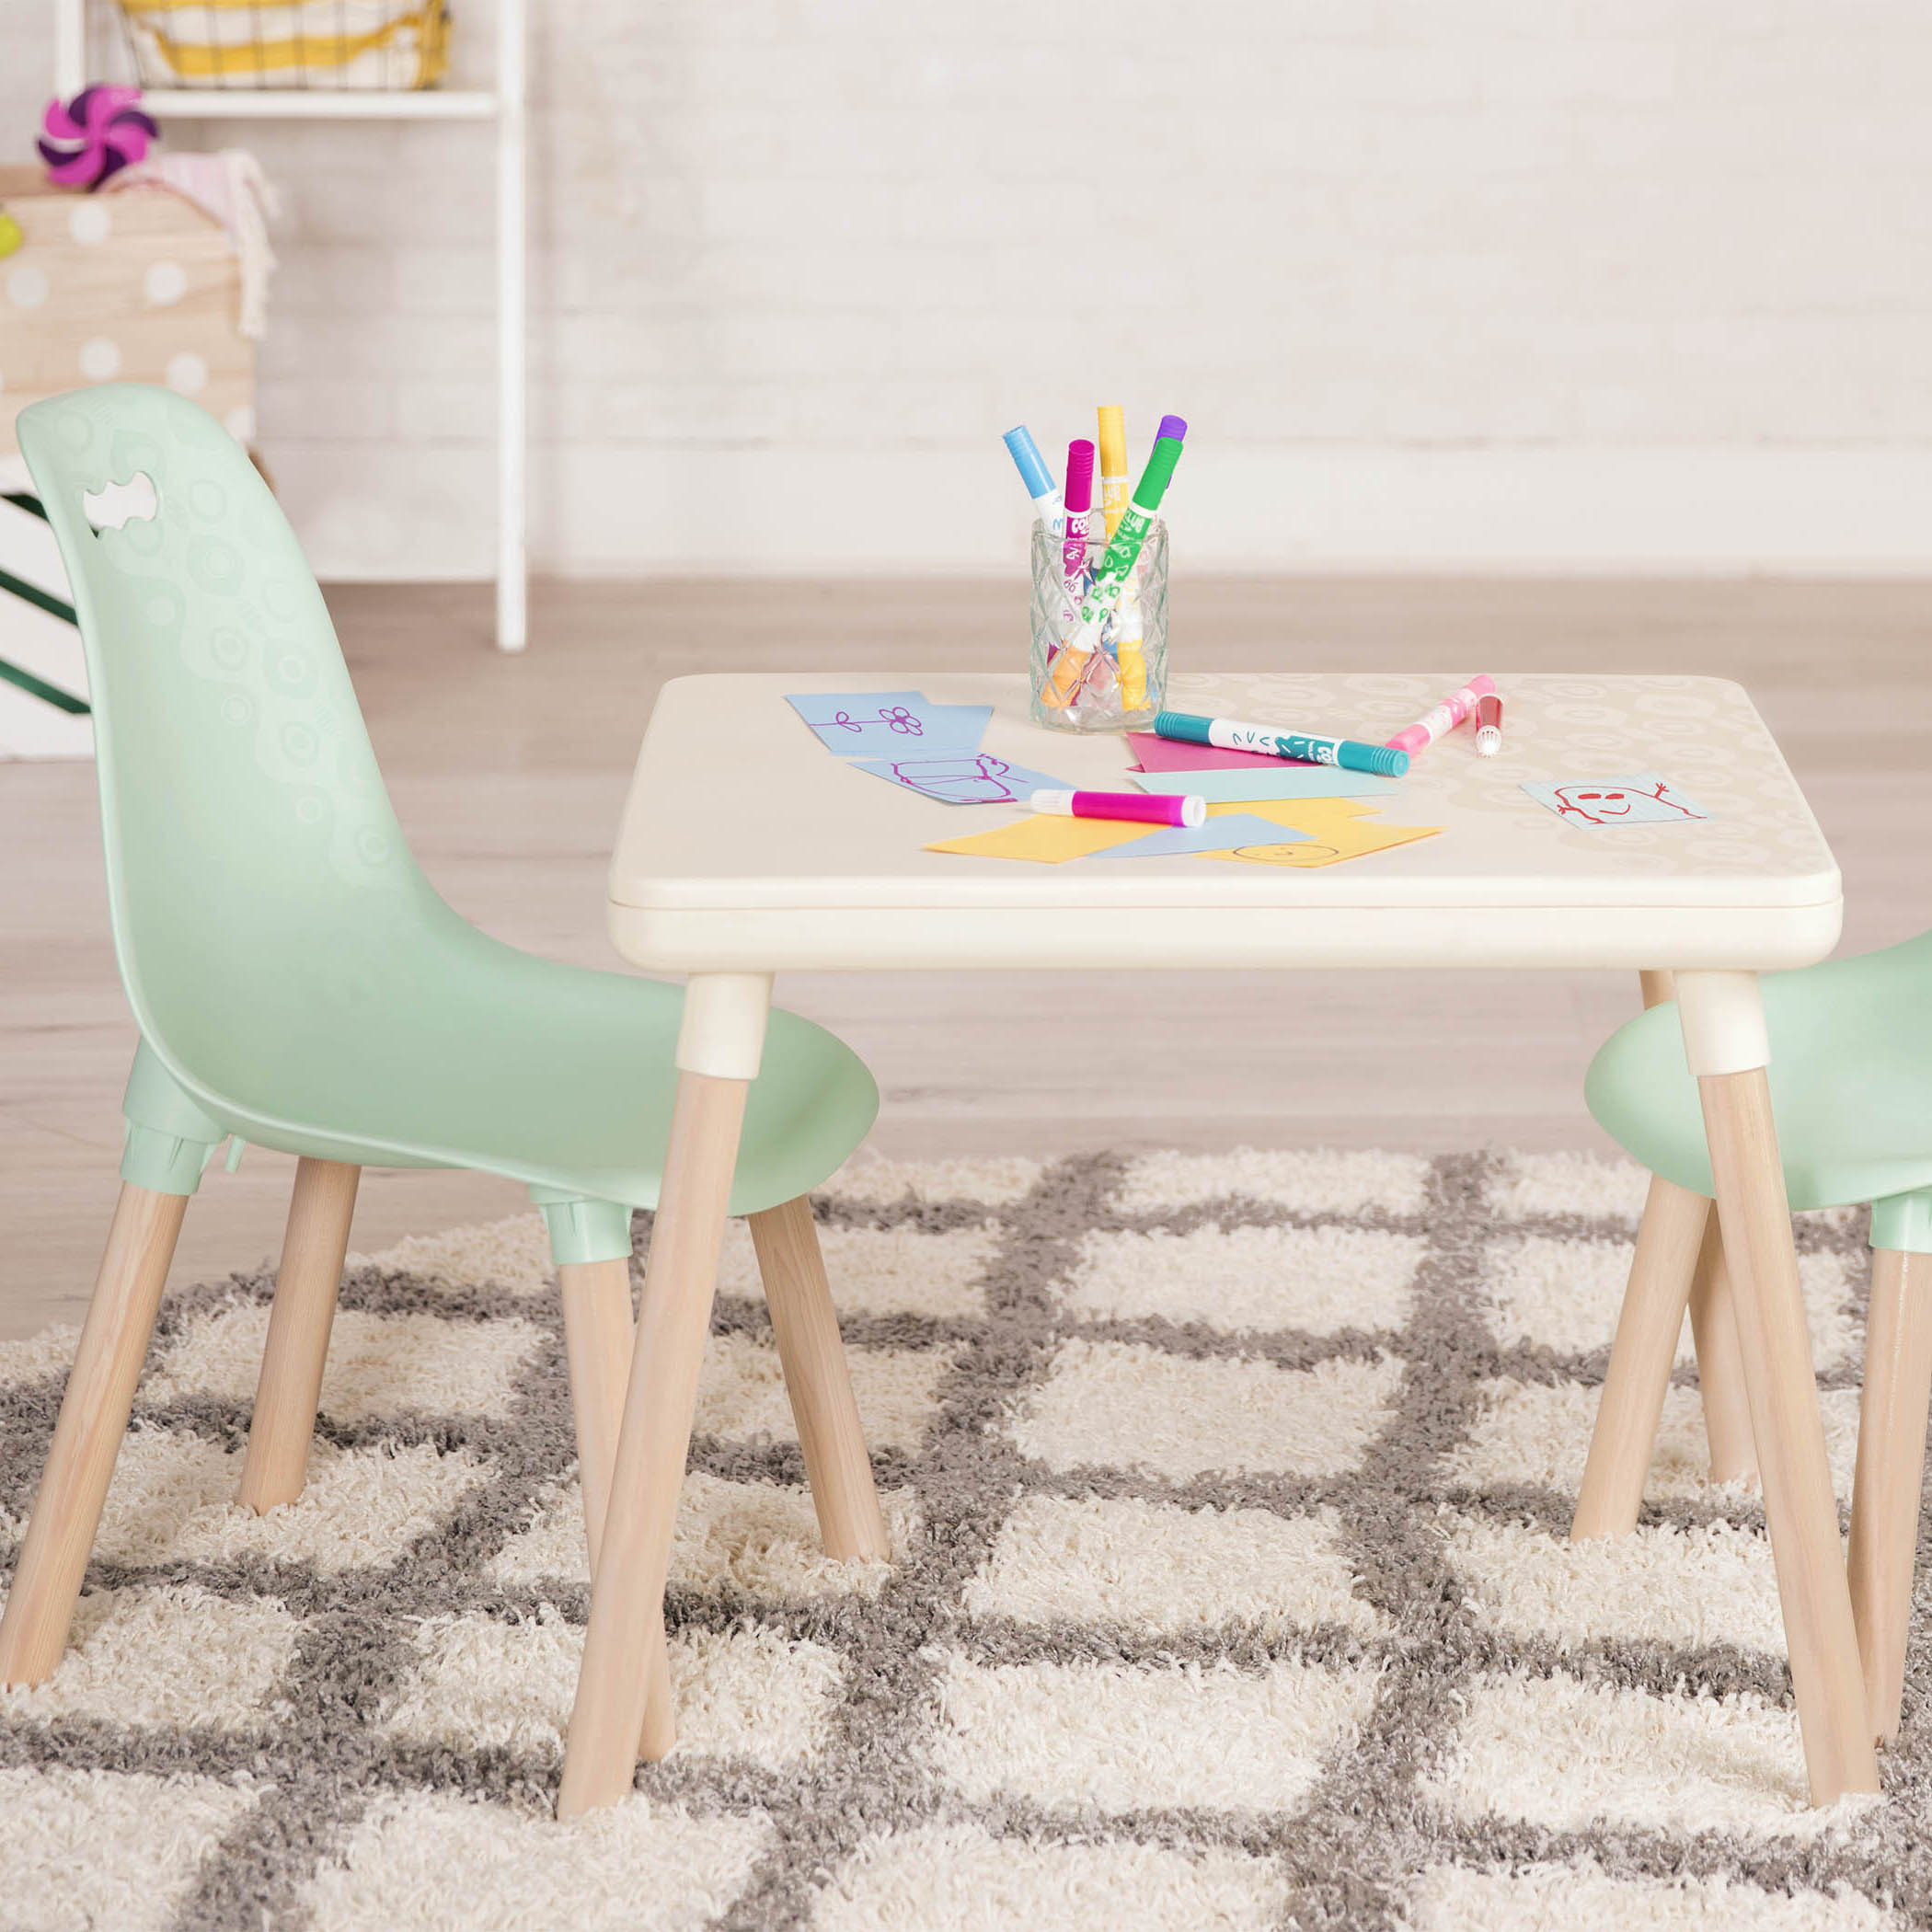 Fine Kid Century Table And Chair Set B Toys Family Choice Awards Pabps2019 Chair Design Images Pabps2019Com